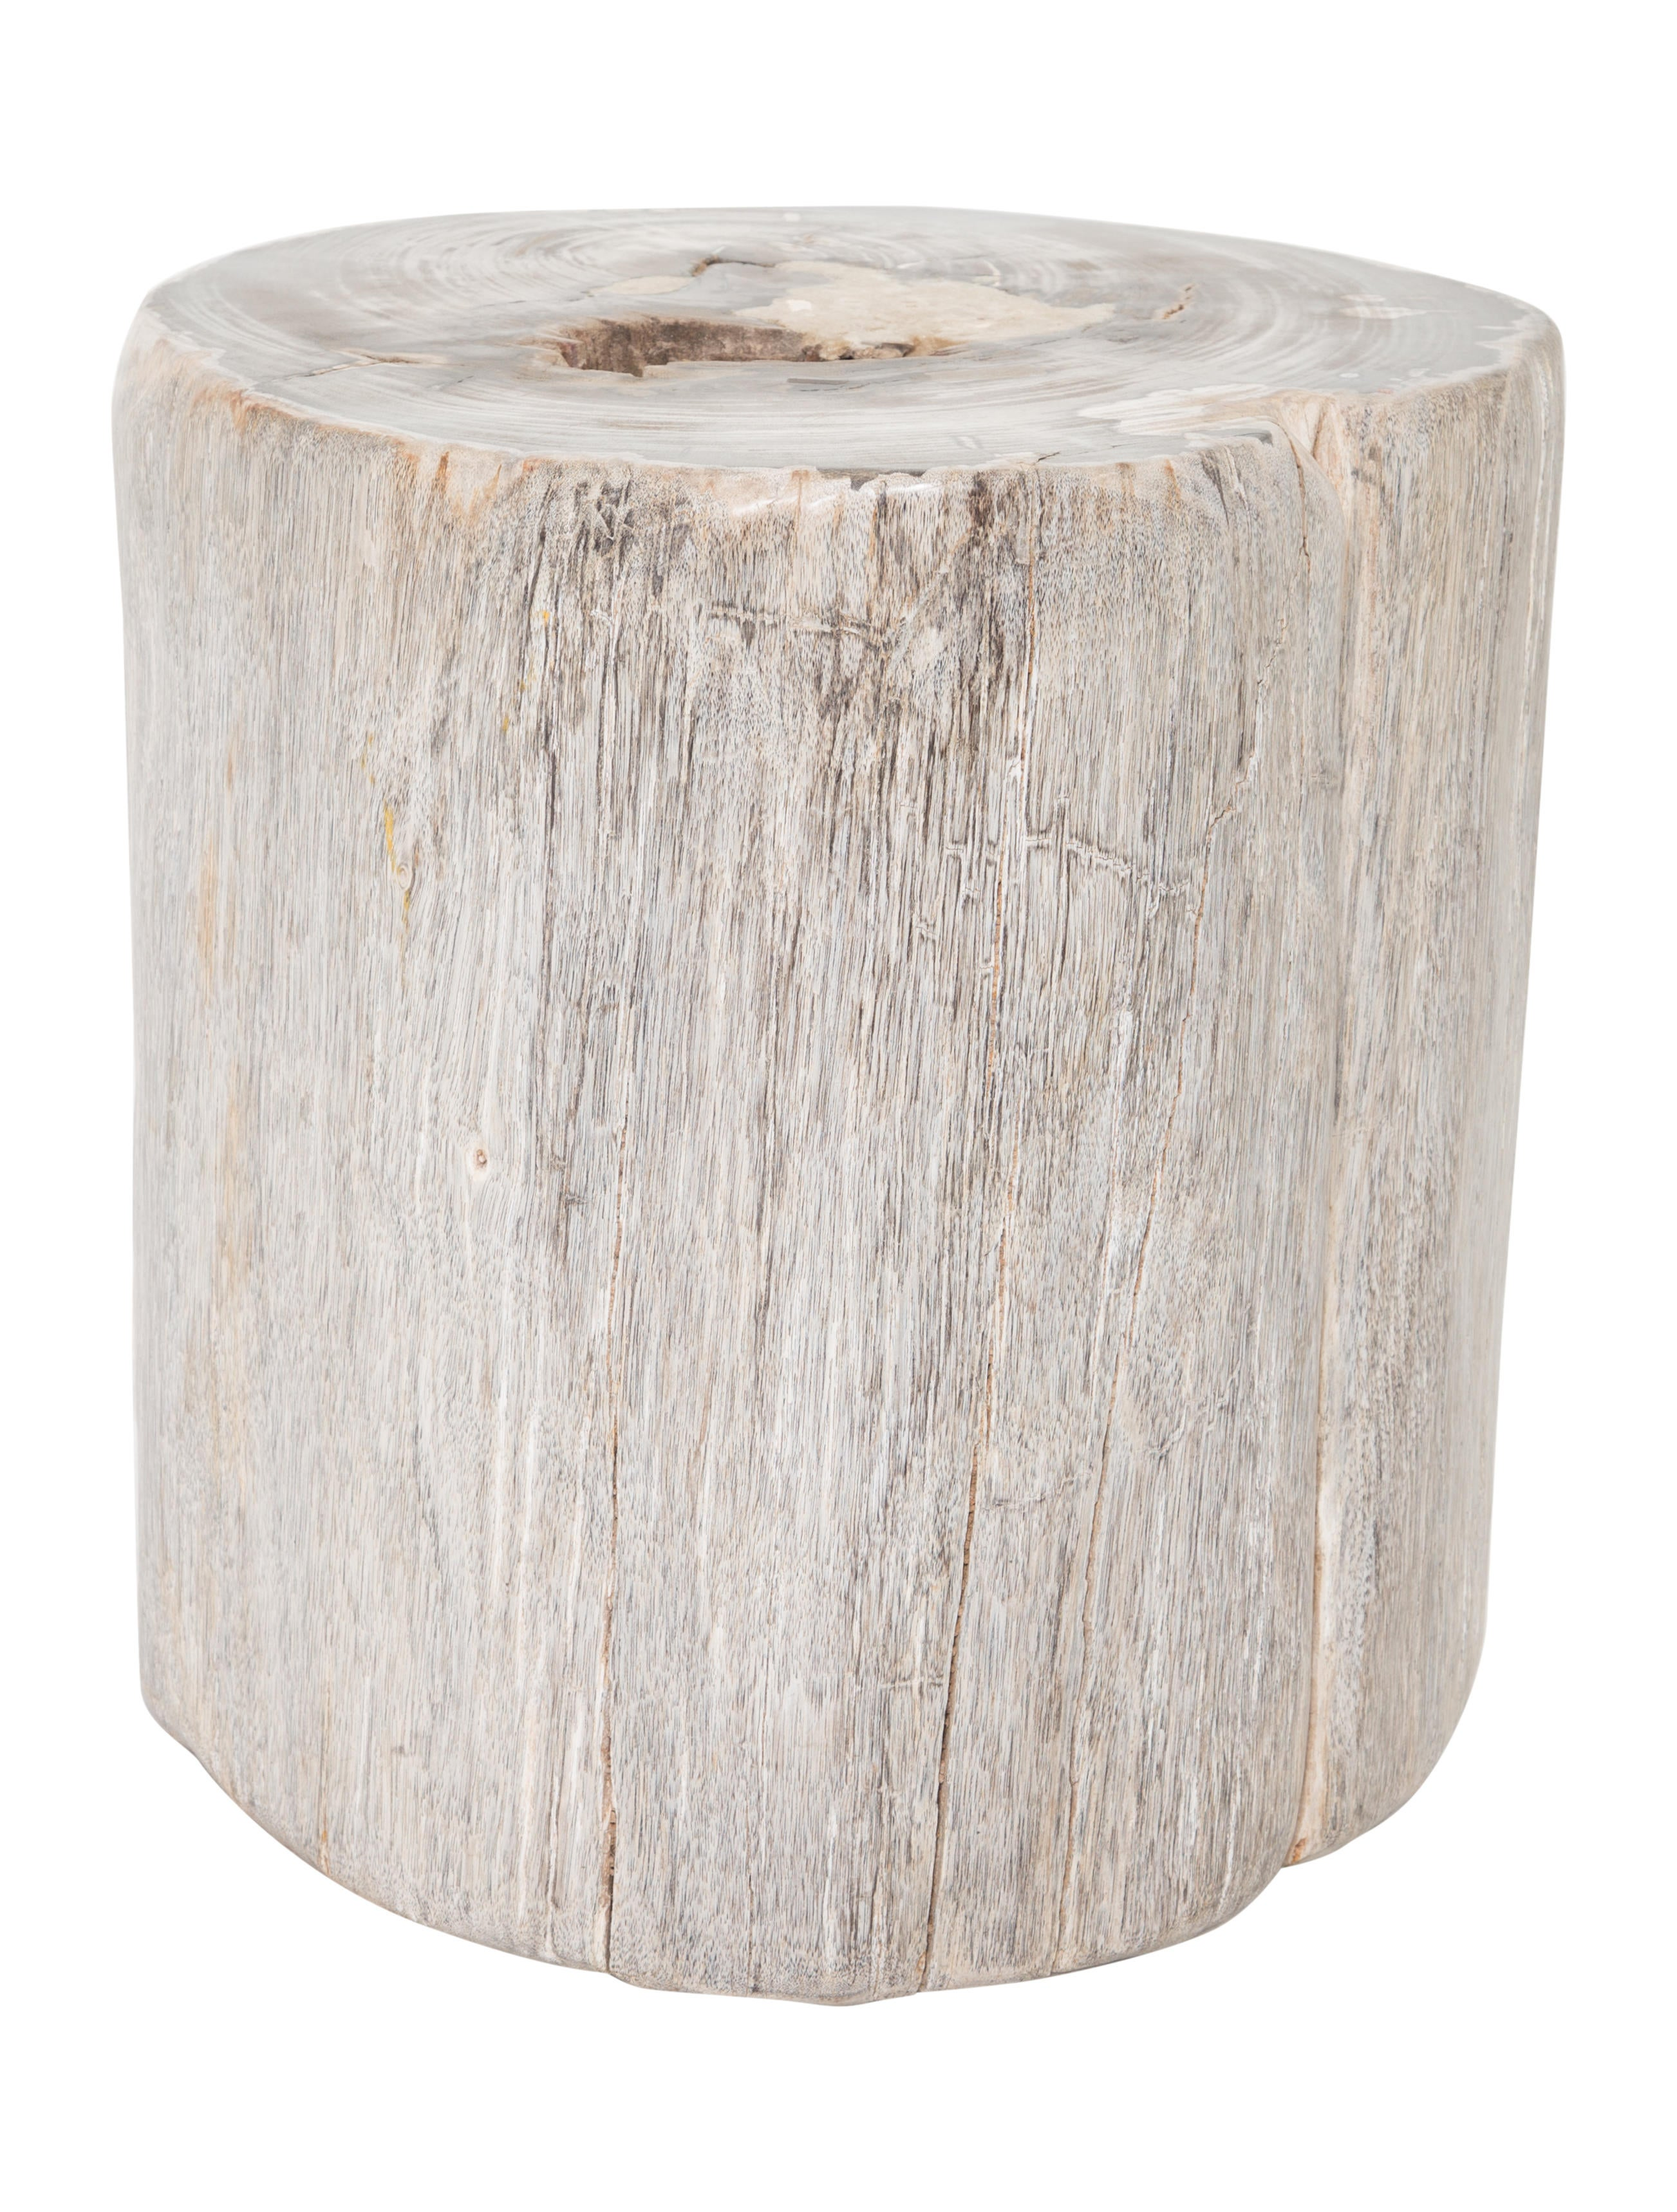 Ralph lauren petrified wood tree stump side table for Wood stump end table